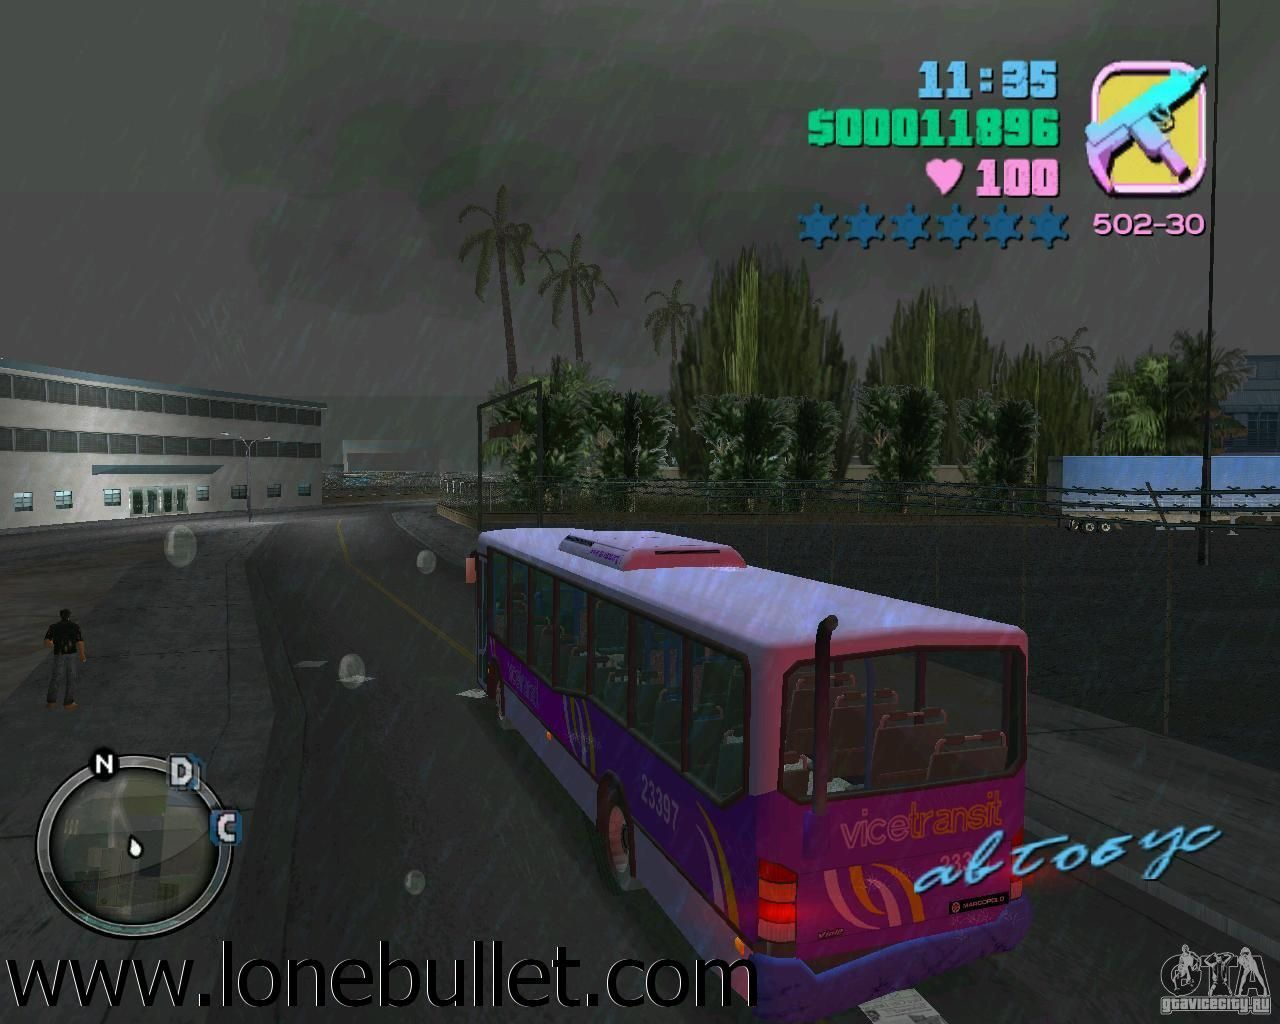 Pin by Lone Bullet on The World of Gaming | Grand theft auto, Bus